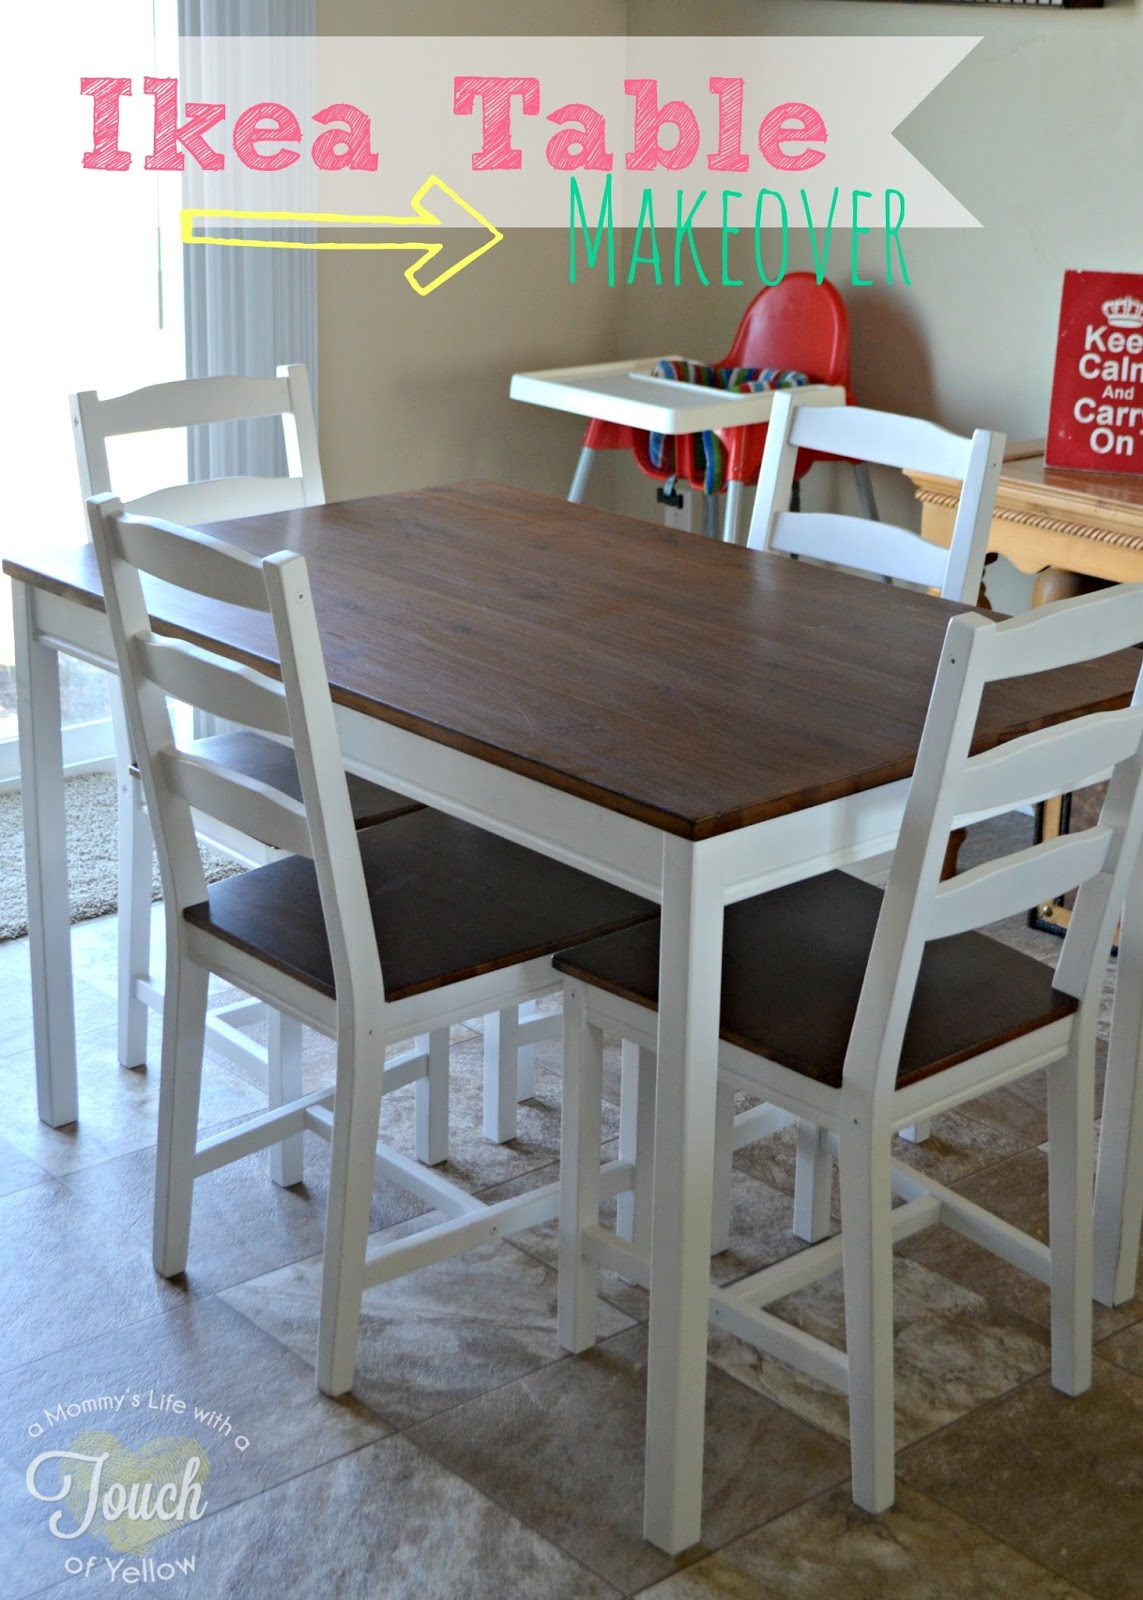 A mommys lifewith a touch of YELLOW Ikea Kitchen Table Makeover Tutorial